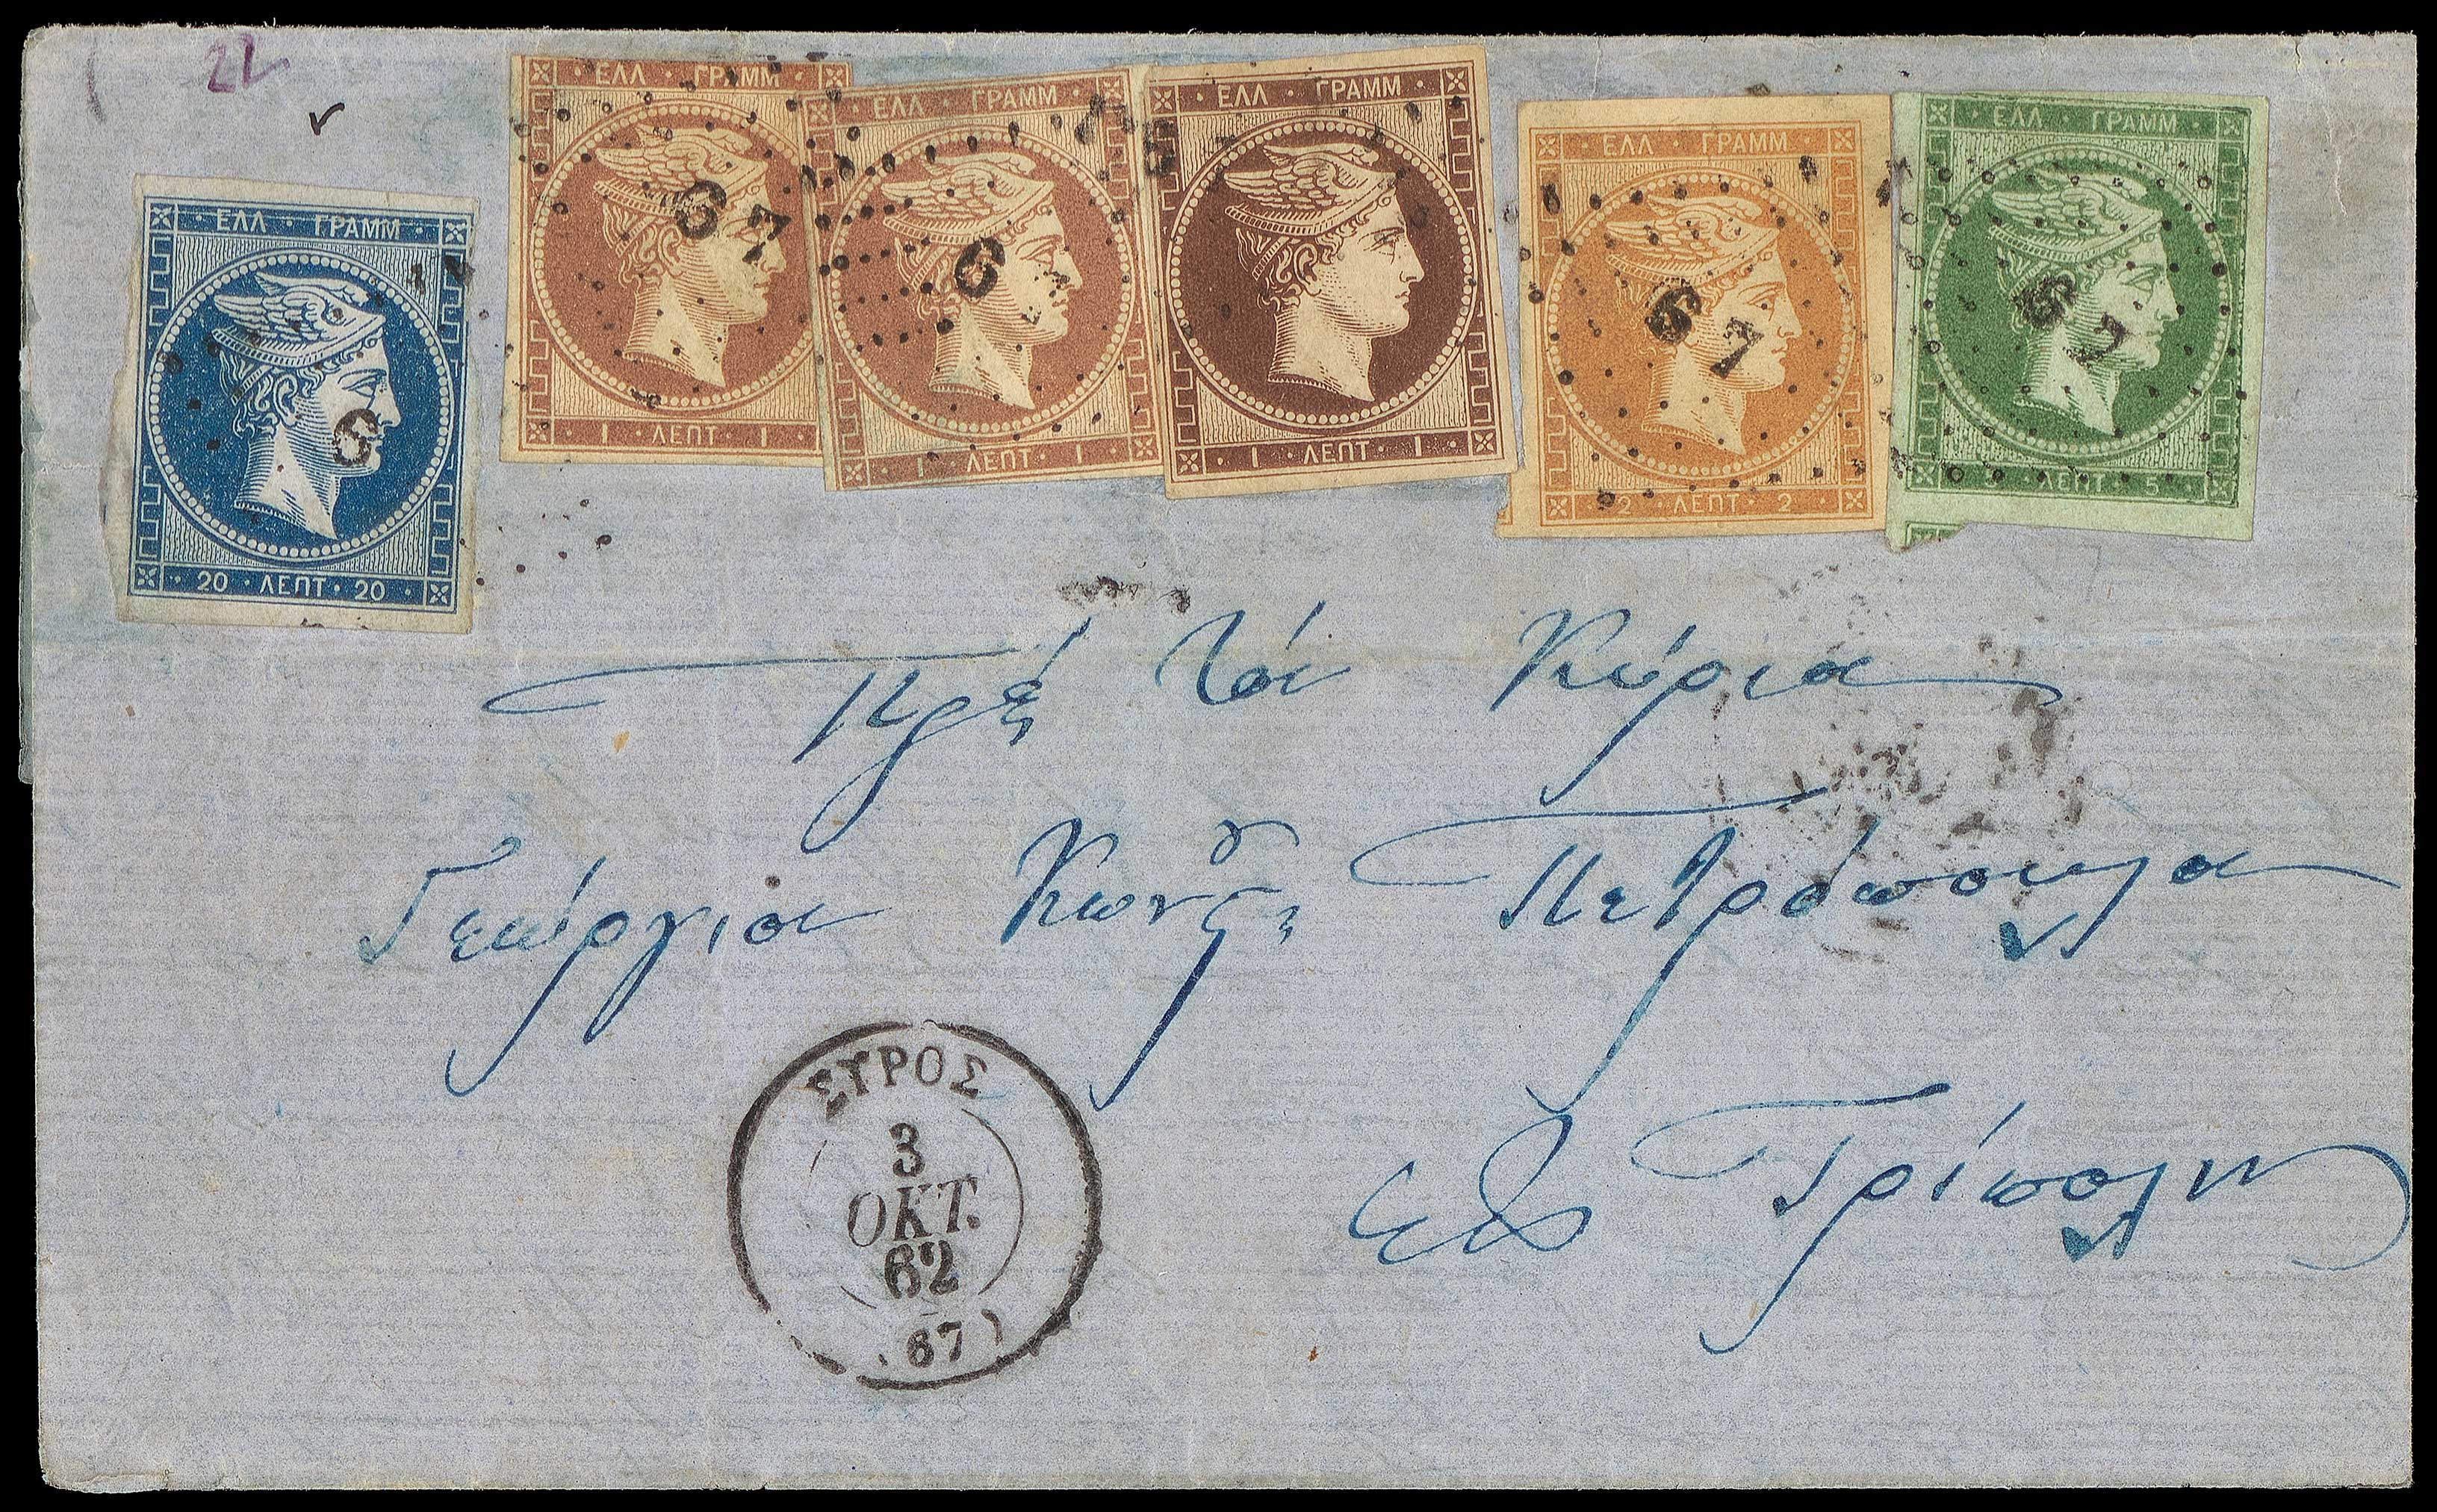 Lot 70 - -  LARGE HERMES HEAD 1861/1862 athens provisional printings -  A. Karamitsos Public & Live Internet Auction 666 Large Hermes Heads Exceptional Stamps from Great Collections